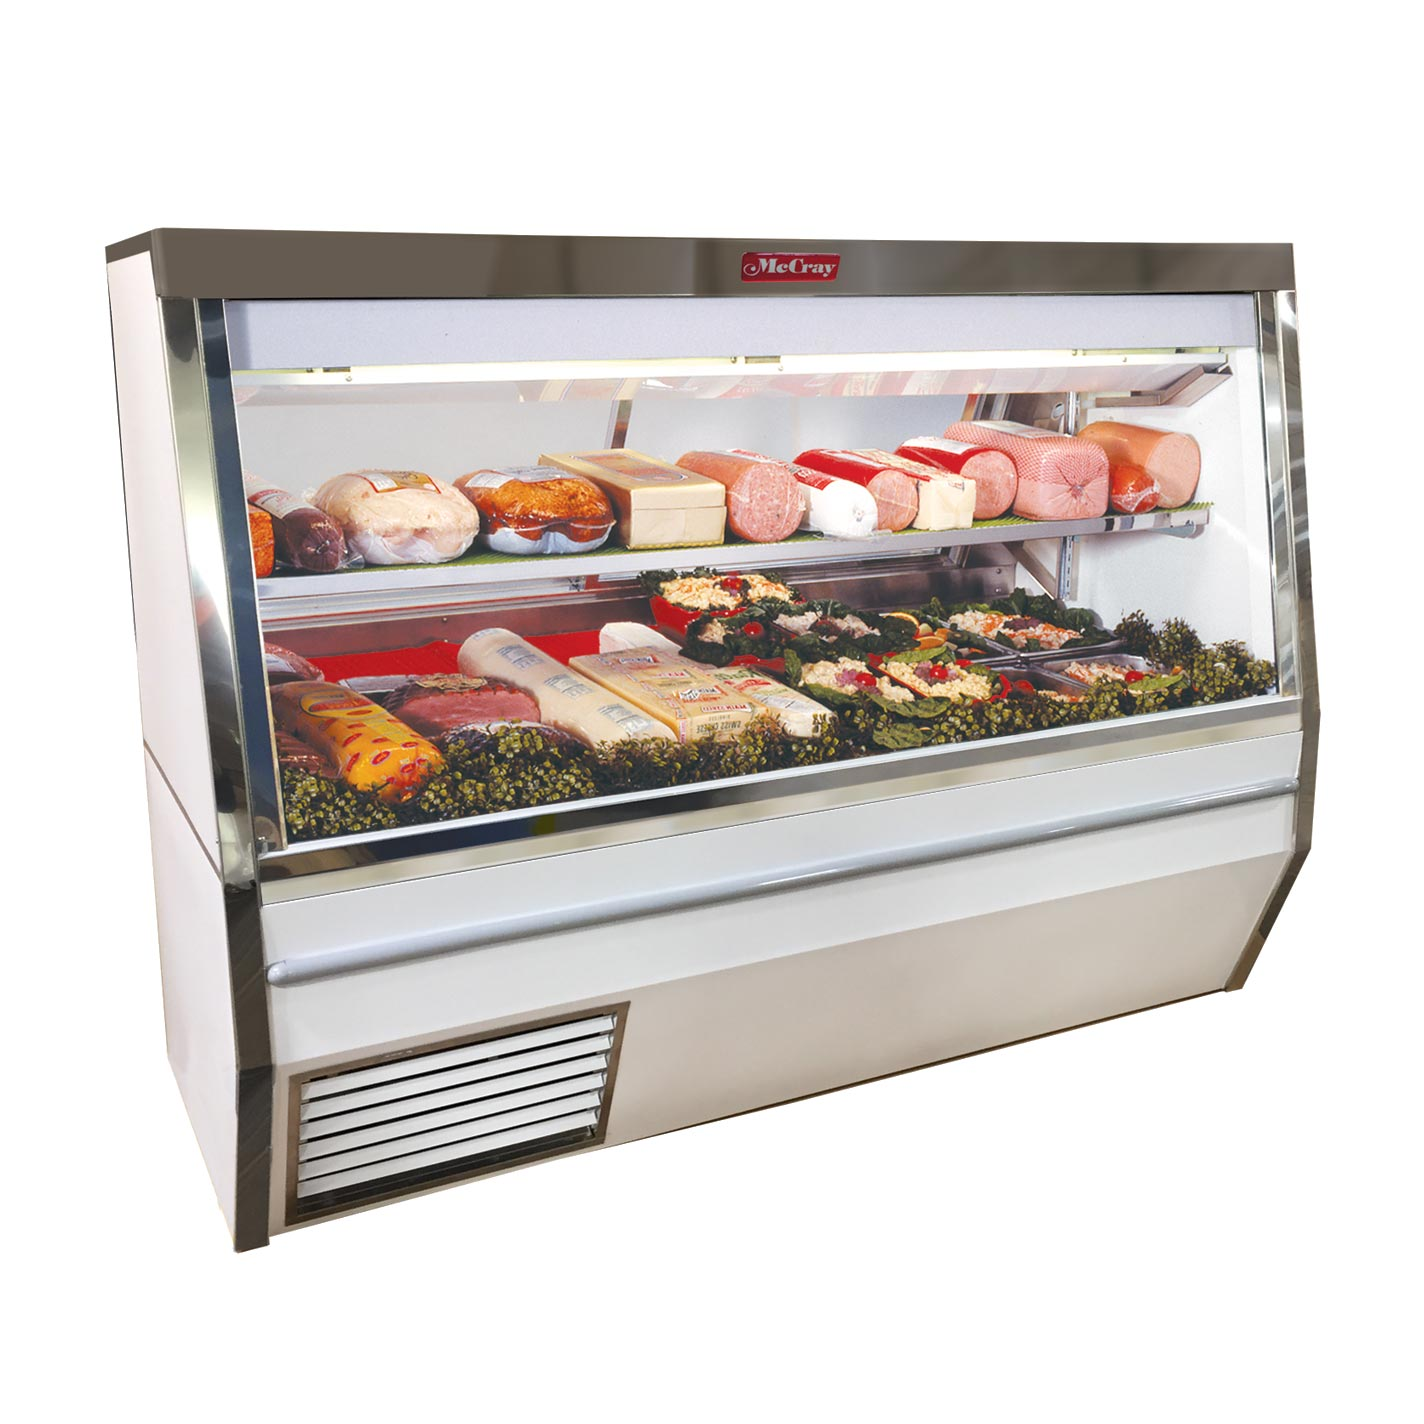 Howard-McCray R-CDS34N-8-BE-LED display case, refrigerated deli